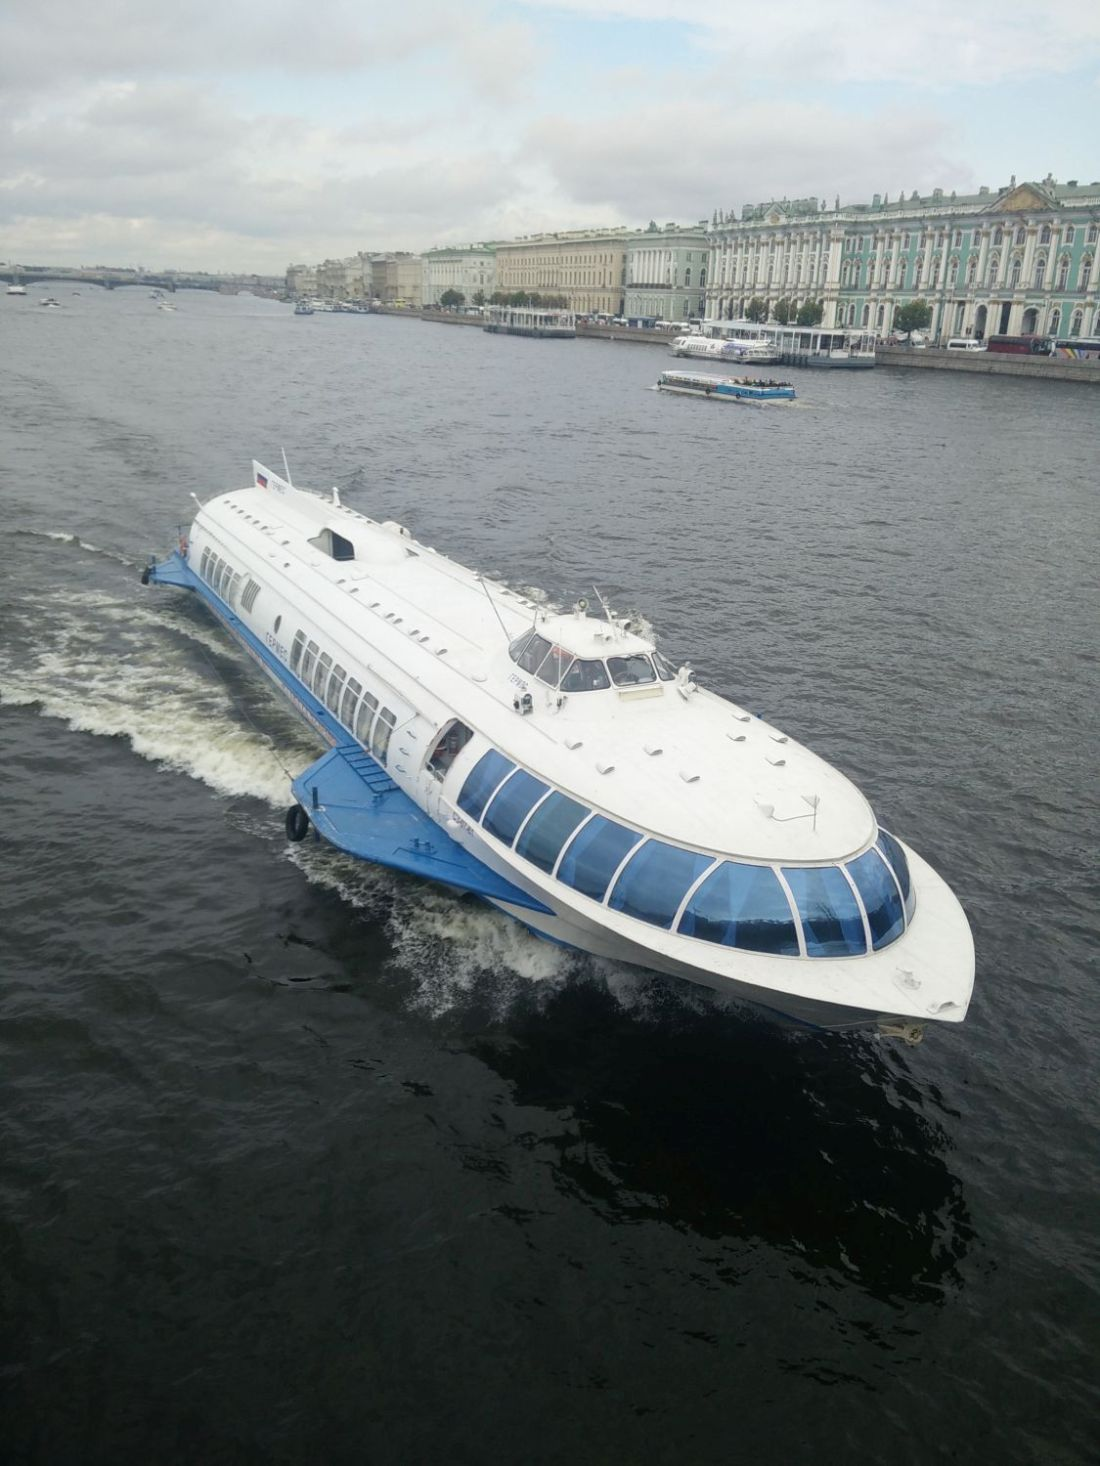 Hydrofoil. (Winter Palace in the background.)